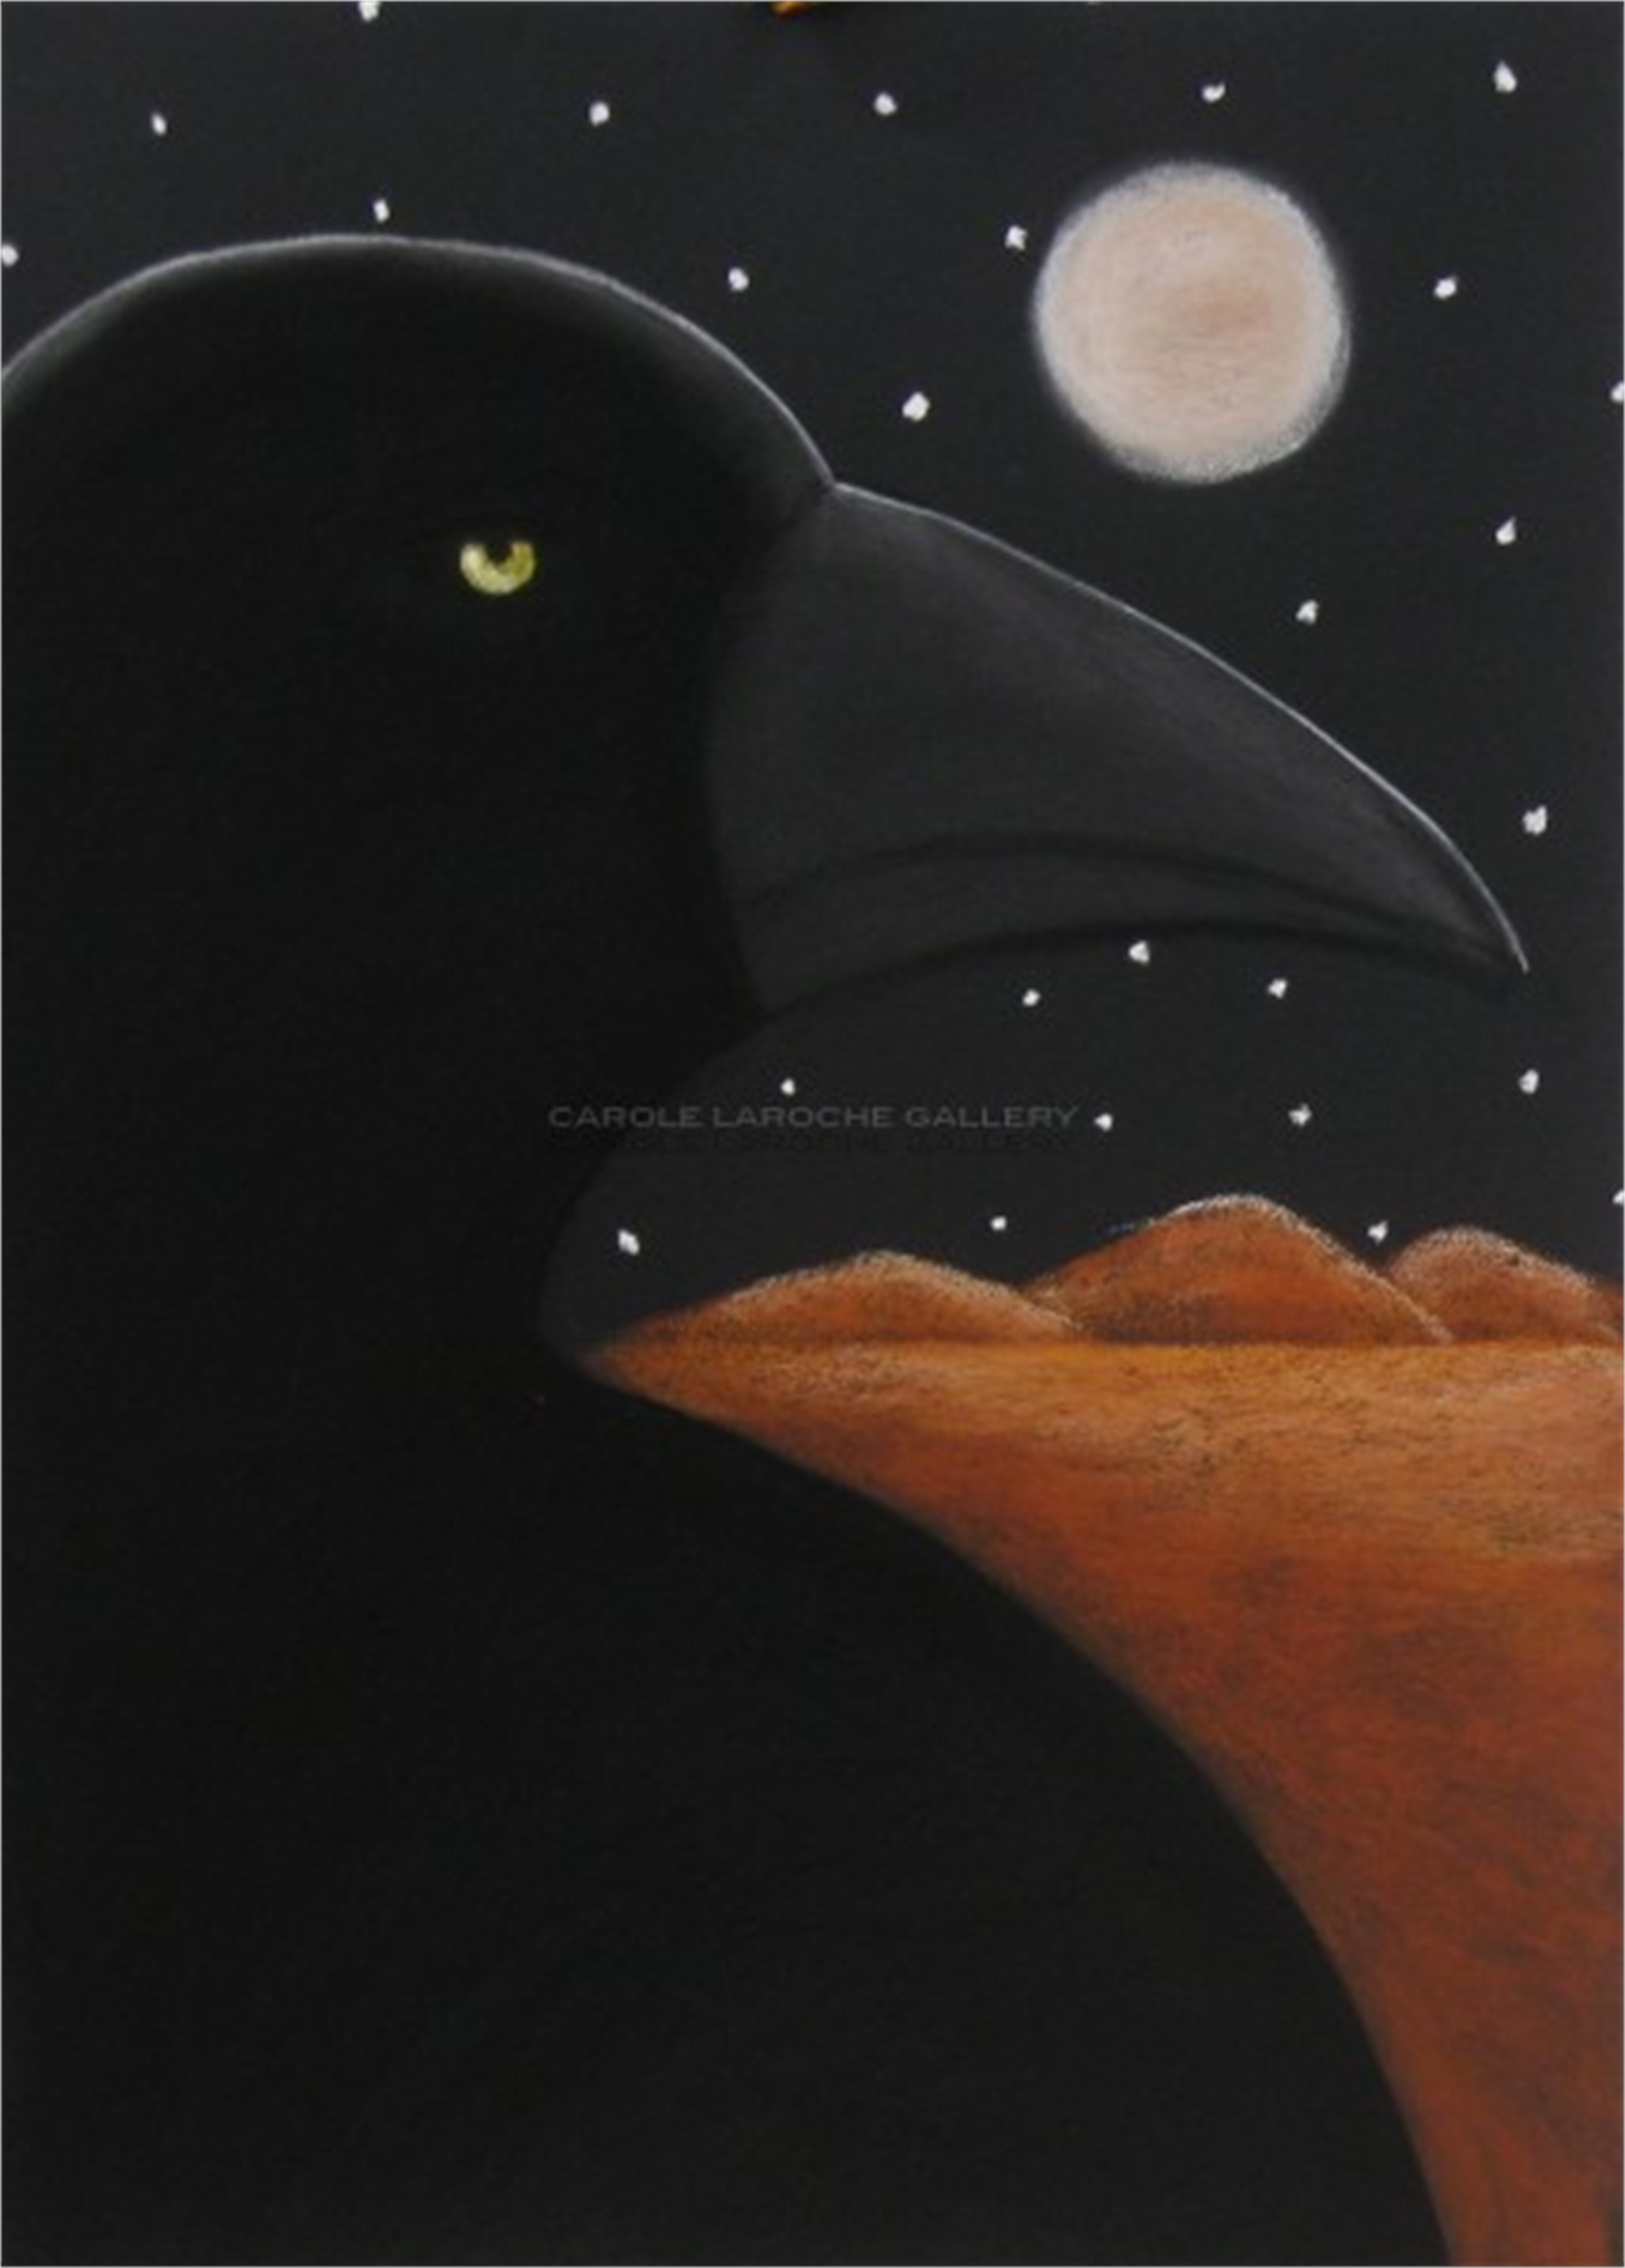 "MIDNIGHT RAVEN - limited edition giclee on paper w/frame size of 40""x32"" or limited edition giclee on canvas 38""x28"" $2200 by Carole LaRoche"